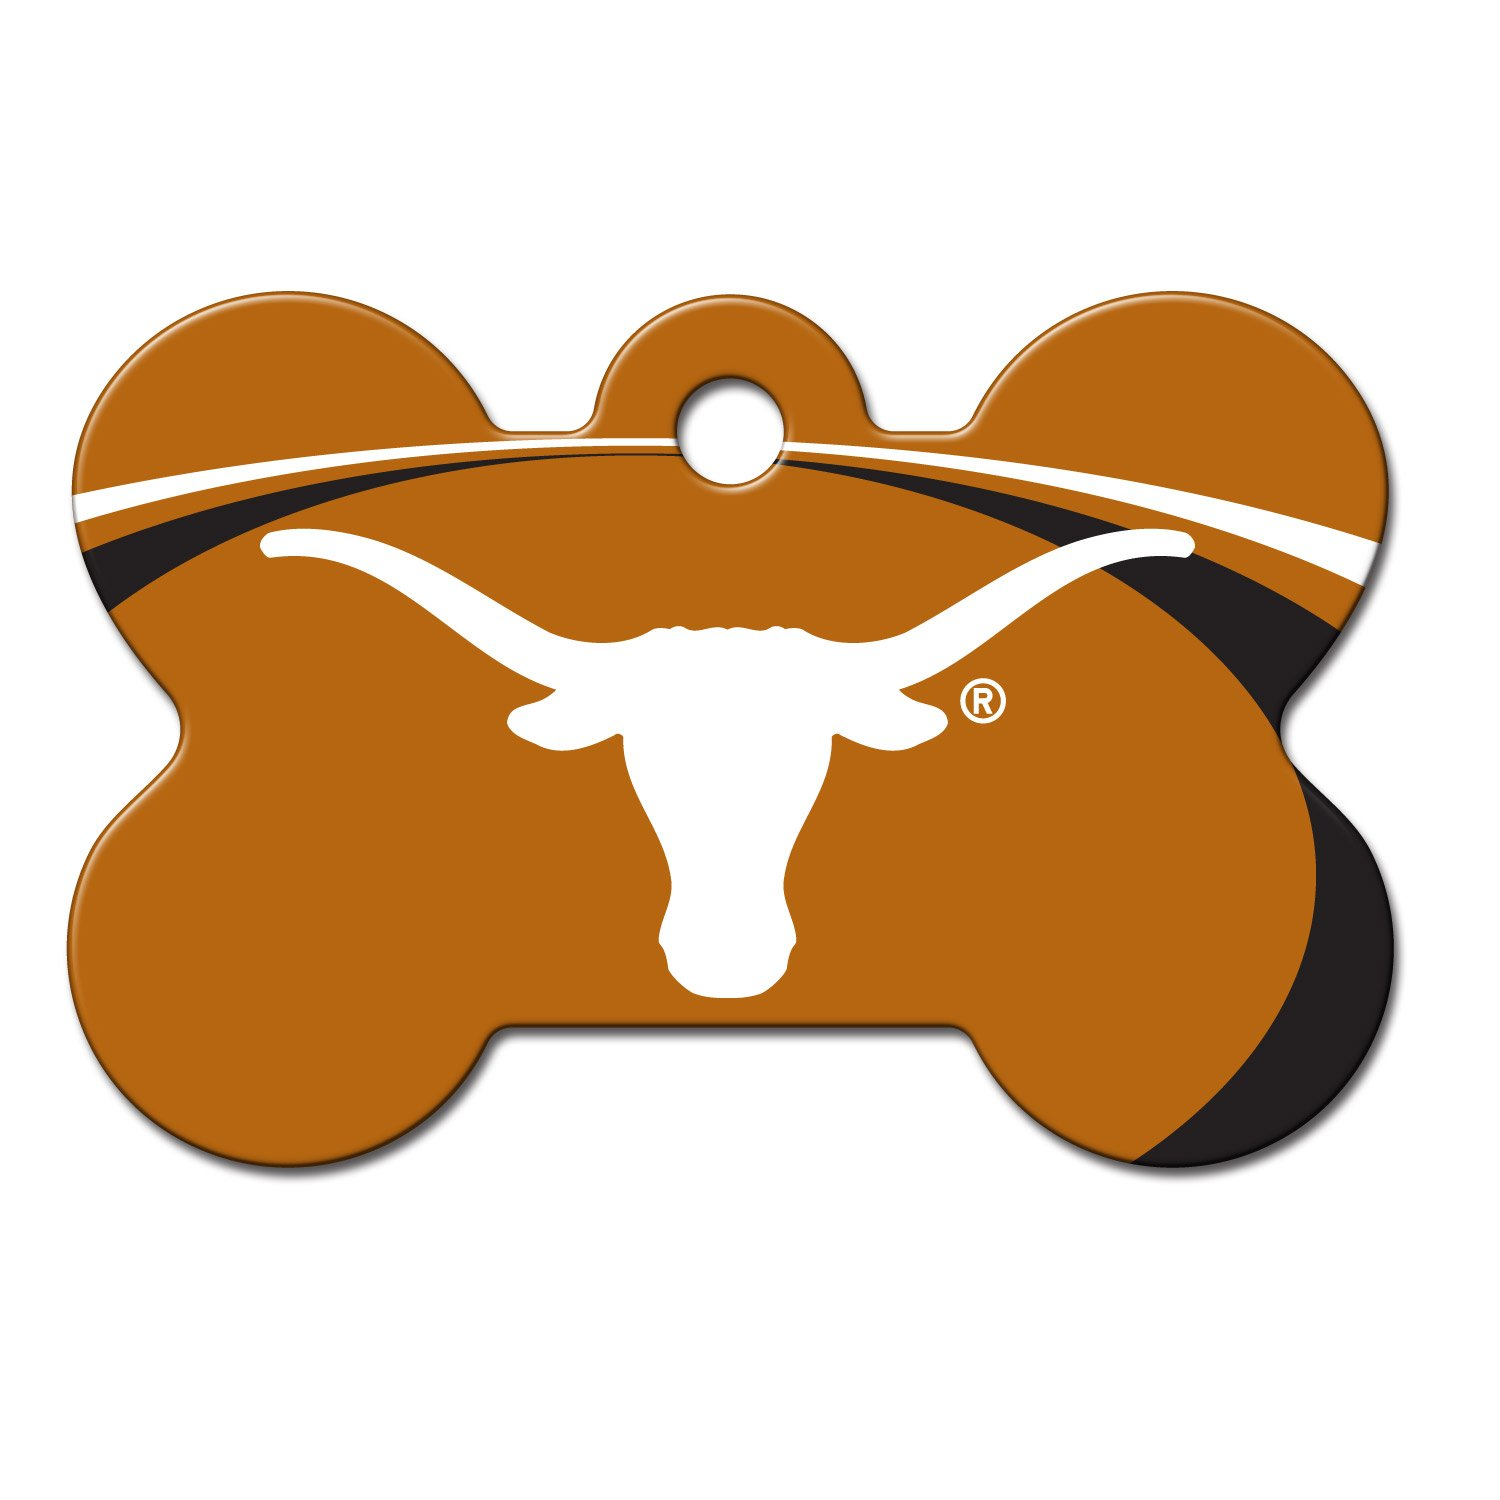 hight resolution of 1500x1500 dog collar tag clip art elegant quick tag texas longhorns ncaa